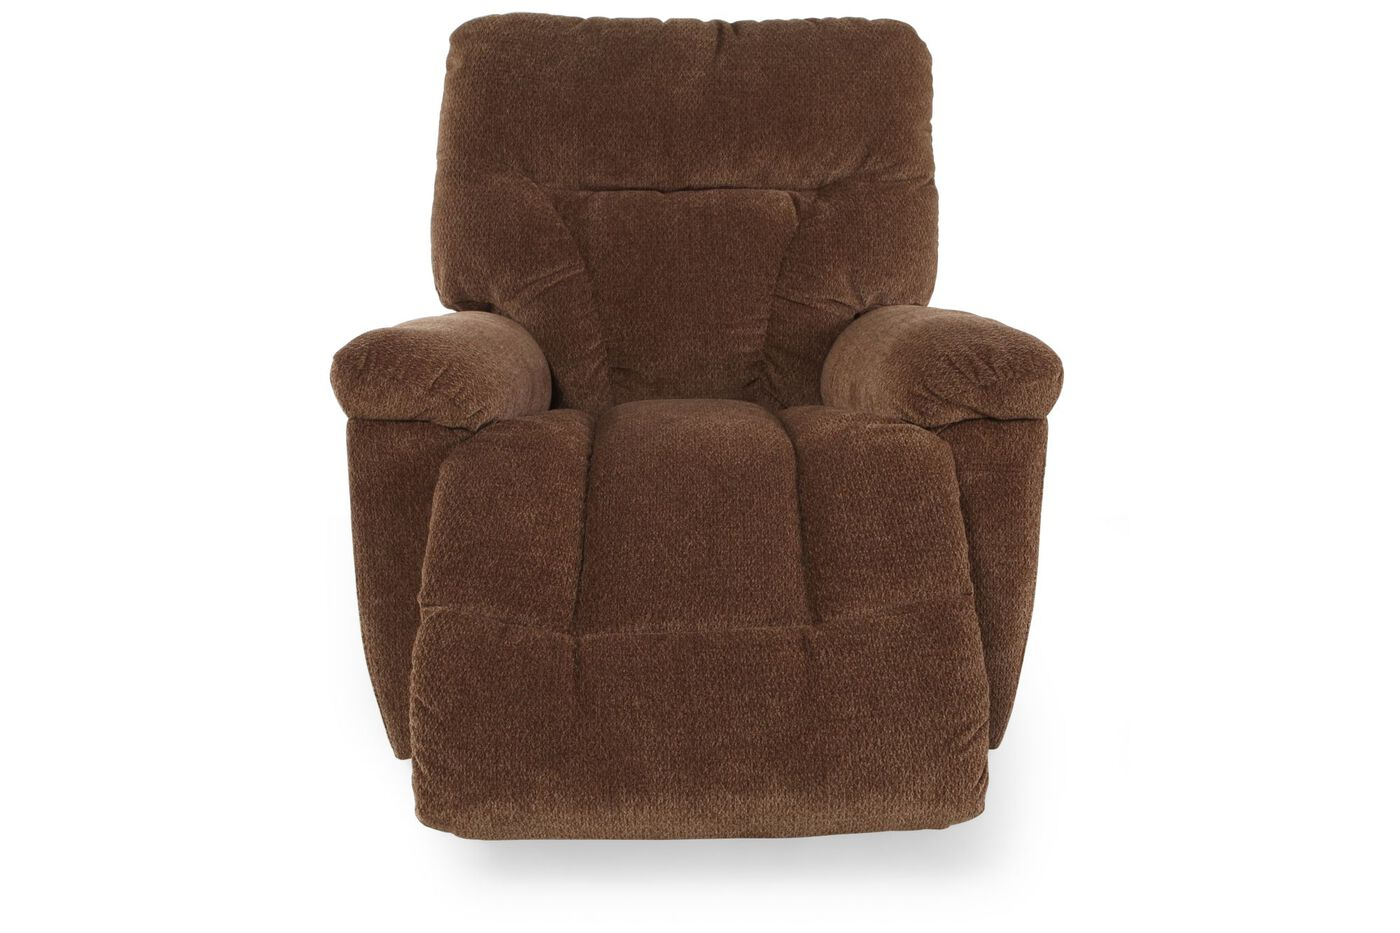 Recliners - Reclining Chairs & Sofas | Mathis Brothers